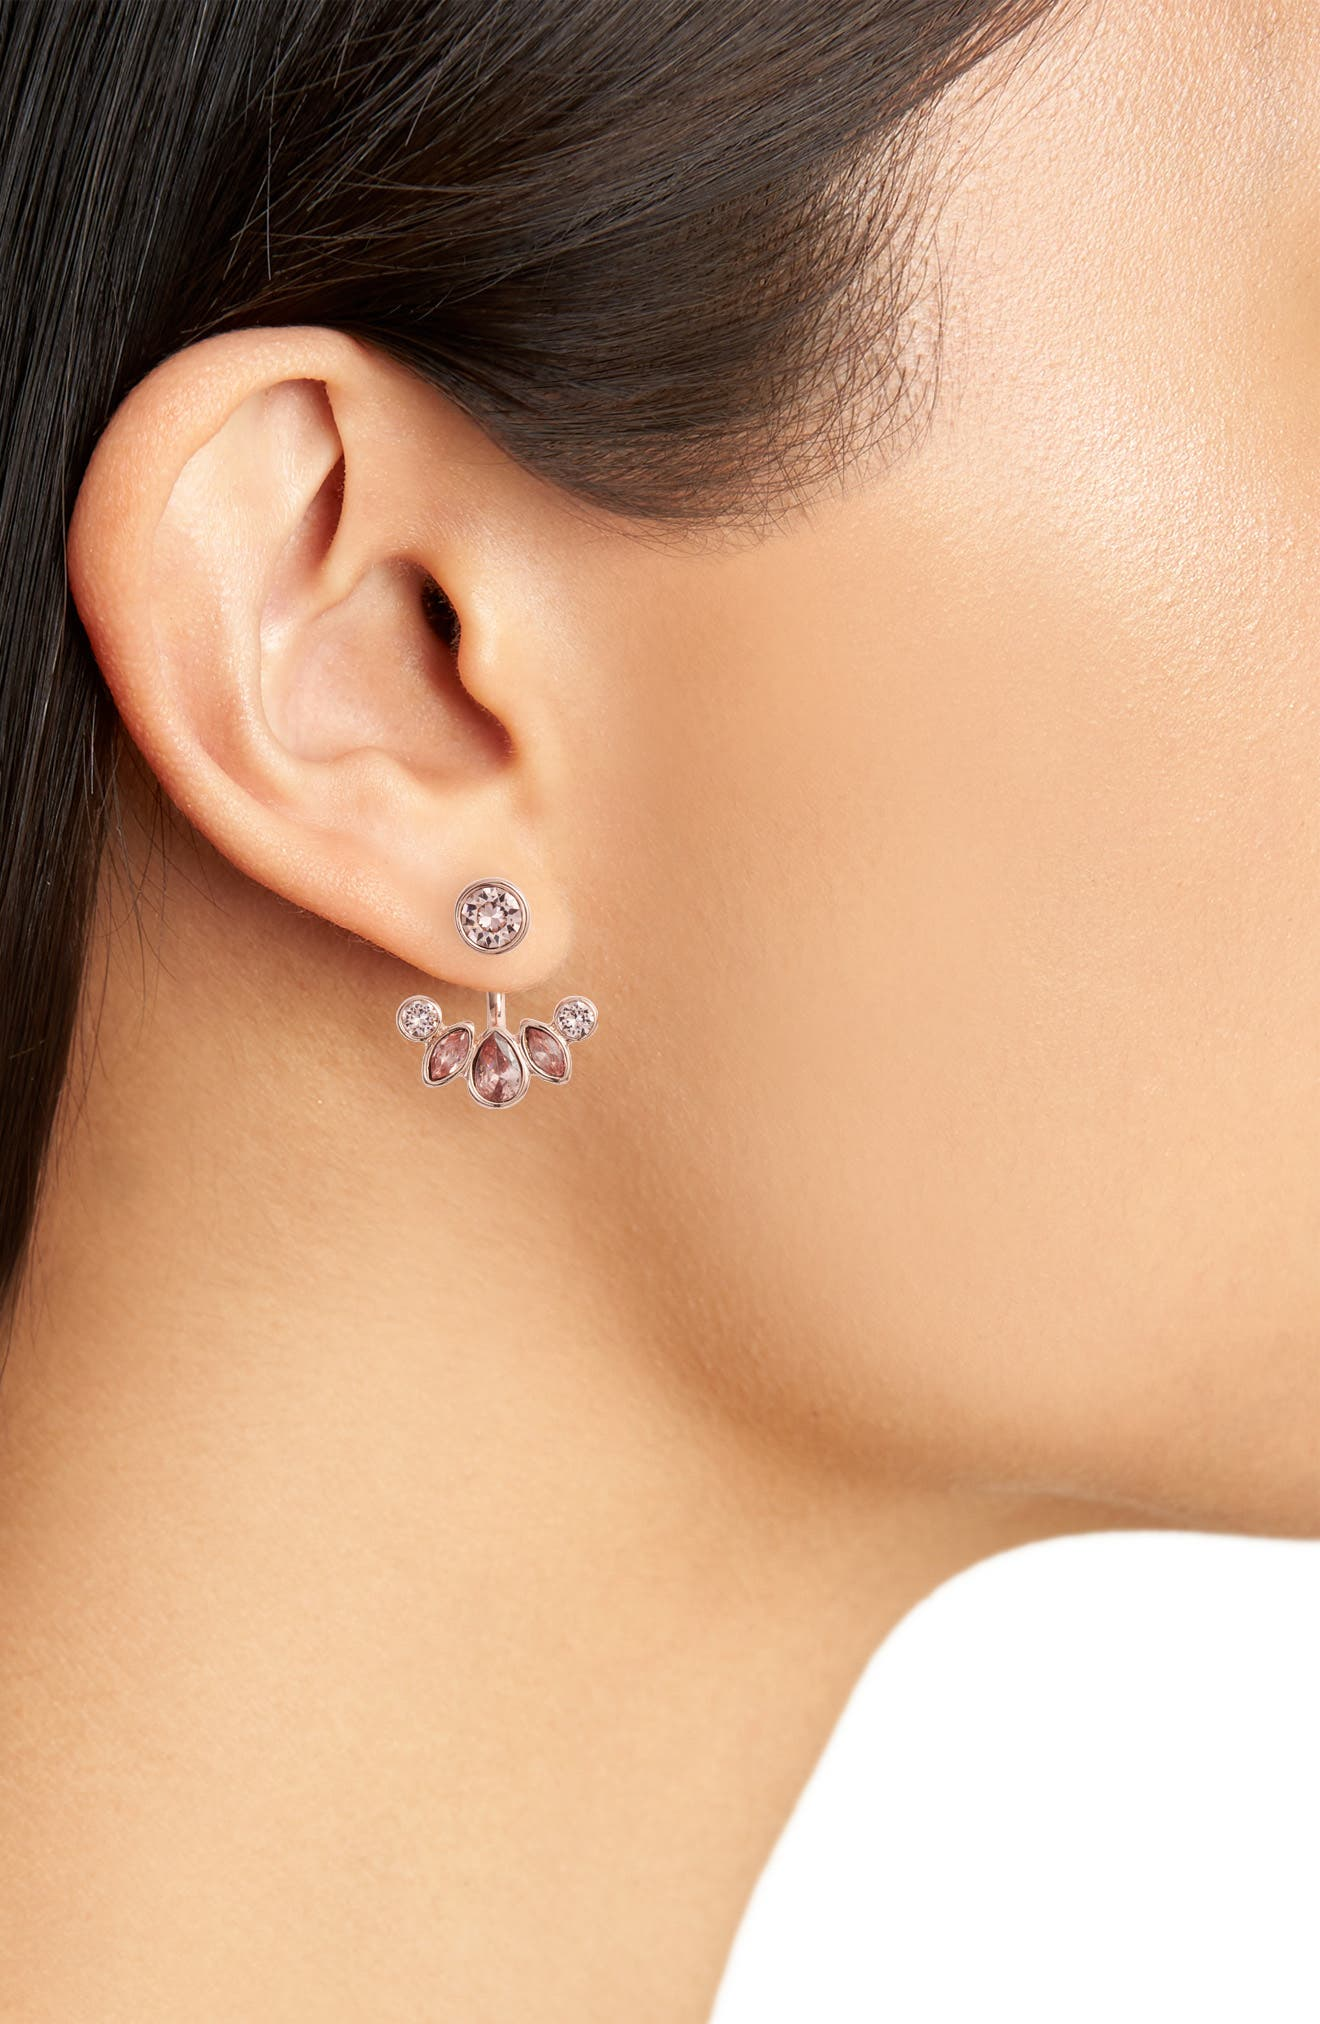 GIVENCHY, Pear Crystal Floater Earrings, Alternate thumbnail 2, color, 650